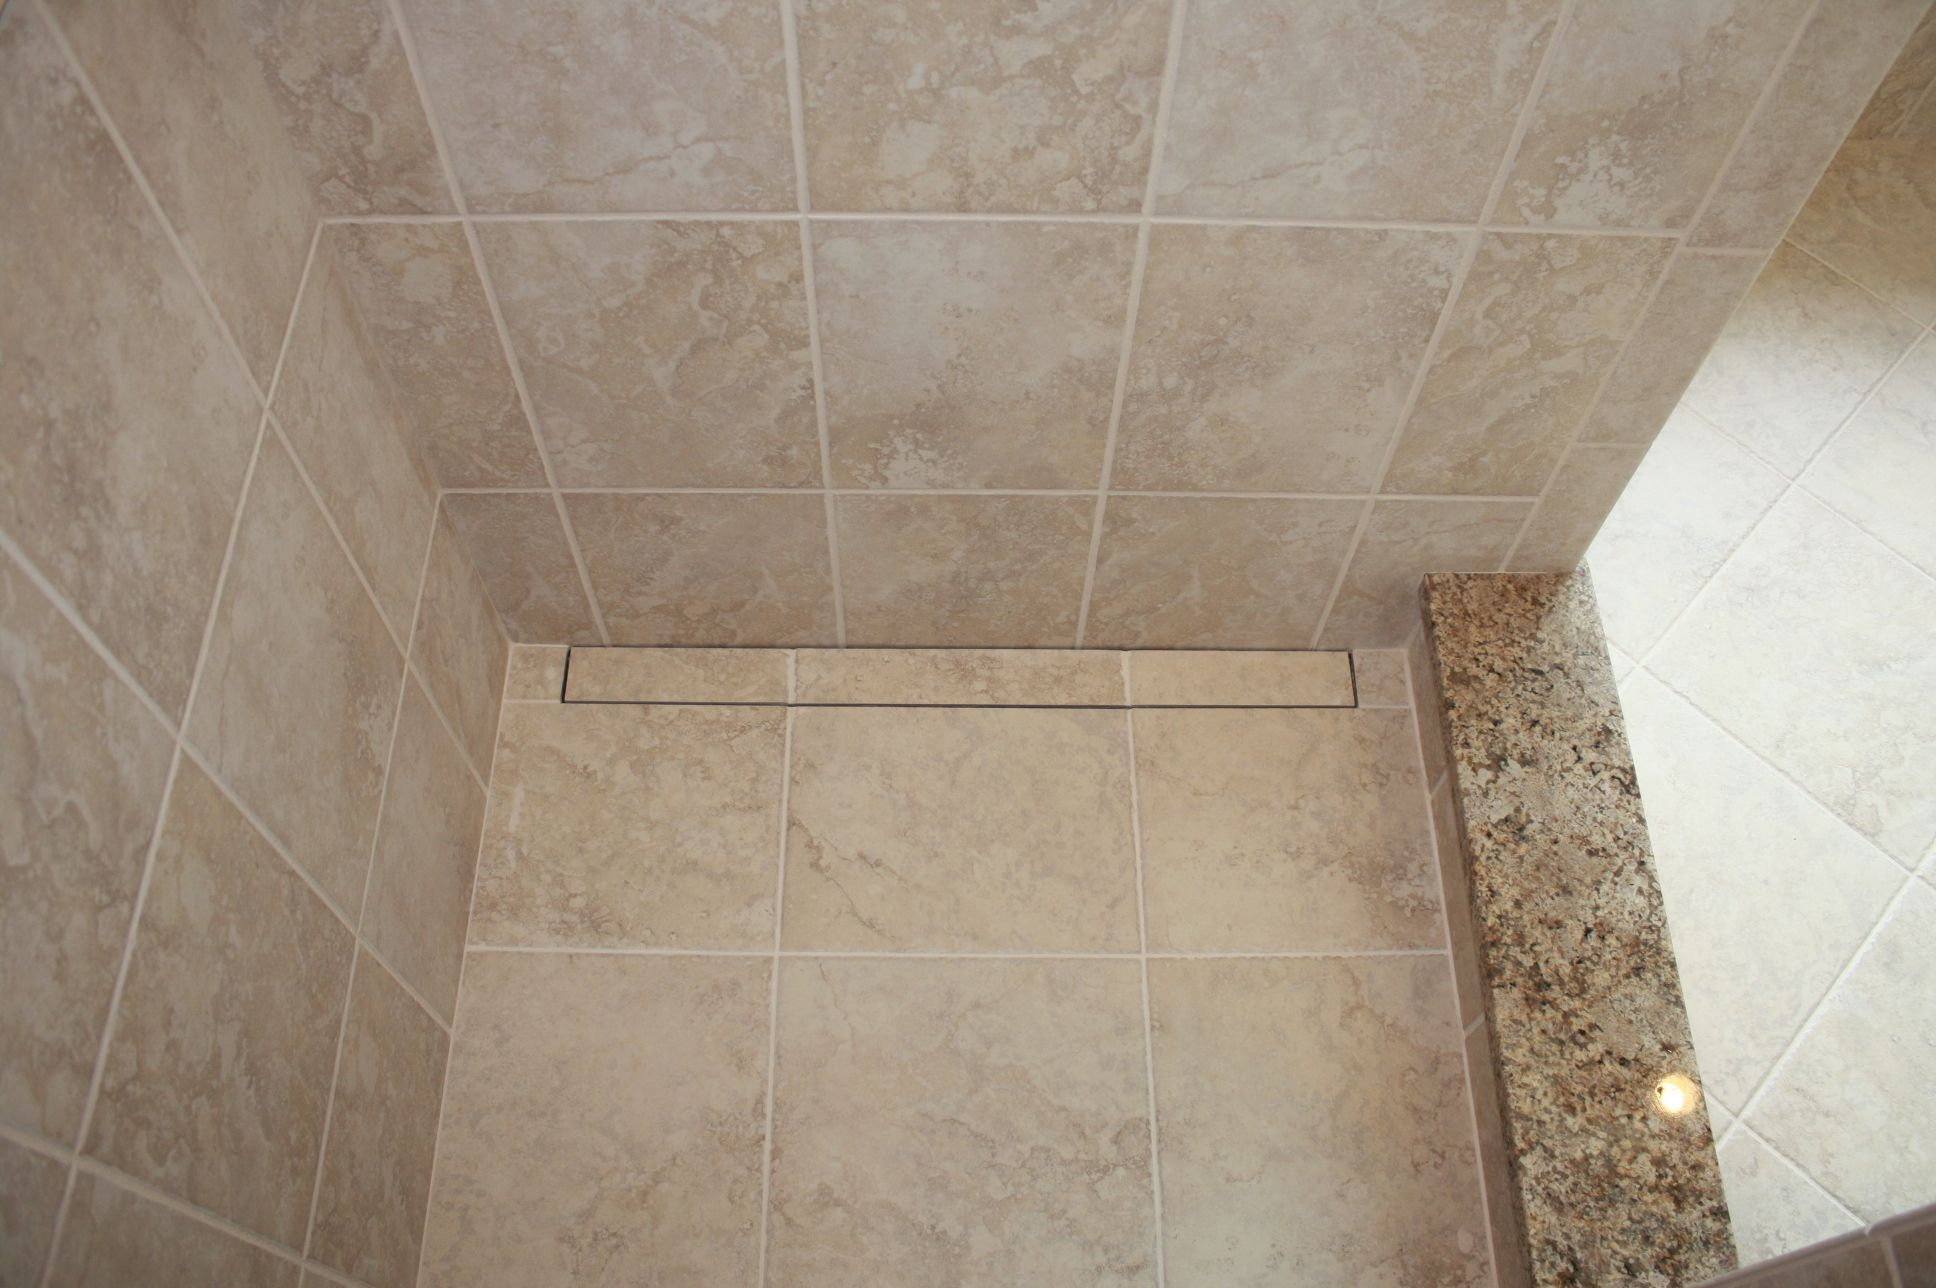 Schluter shower floor using the tiled linear drain any size tile schluter shower floor using the tiled linear drain any size tile can be used on dailygadgetfo Images